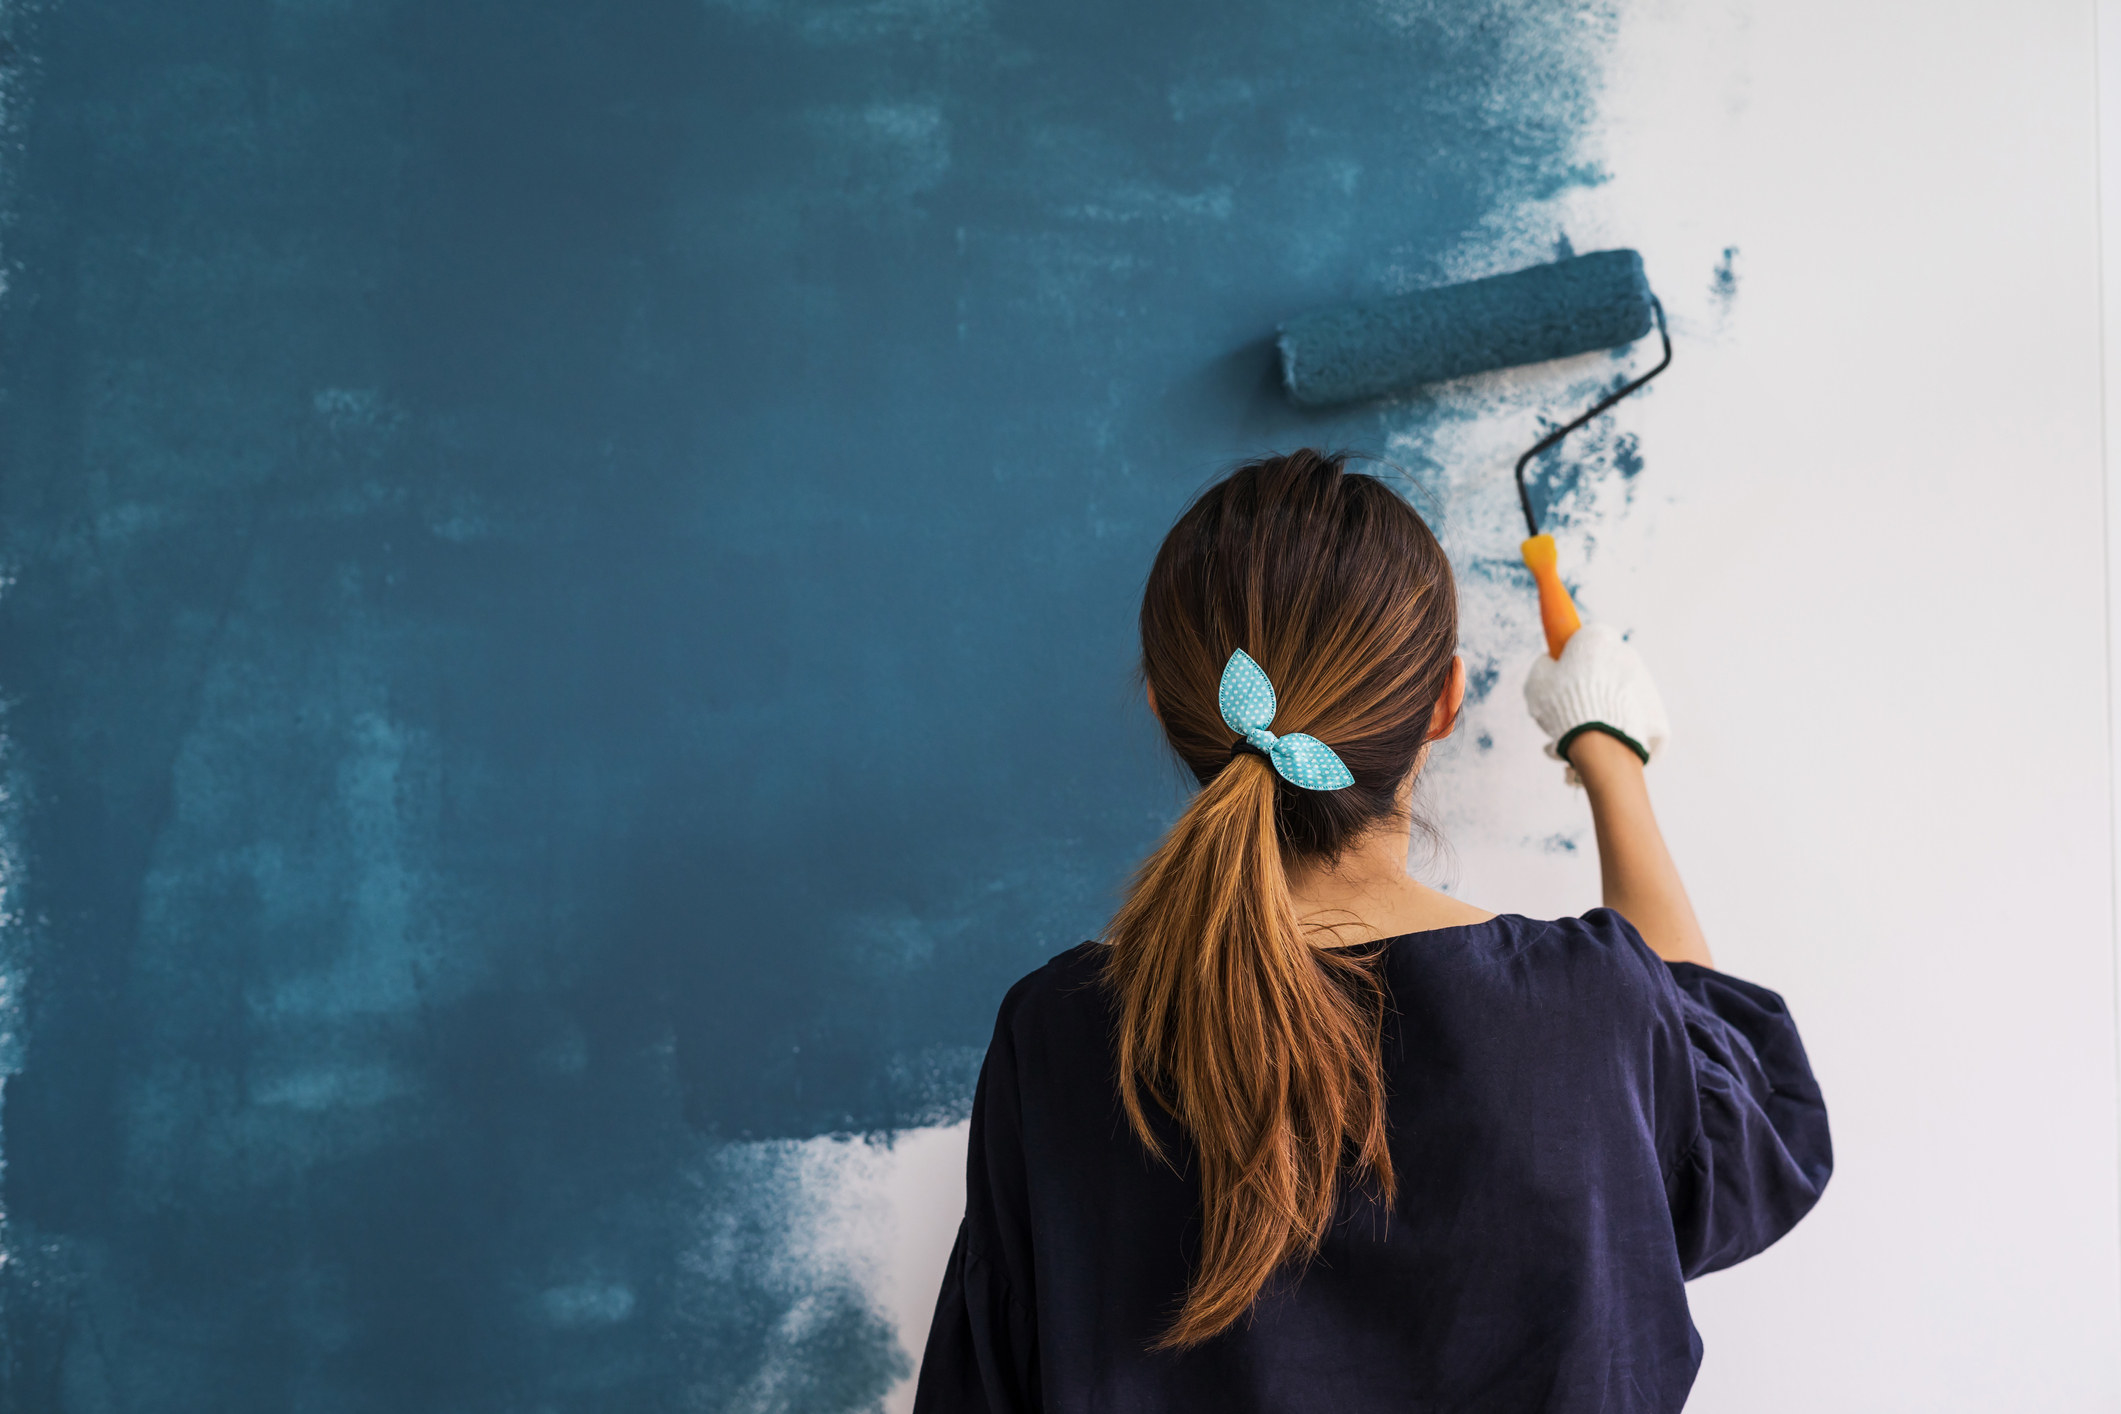 photo of a woman painting a wall with a blue hairband, the wall is being painted from a white to navy blue color